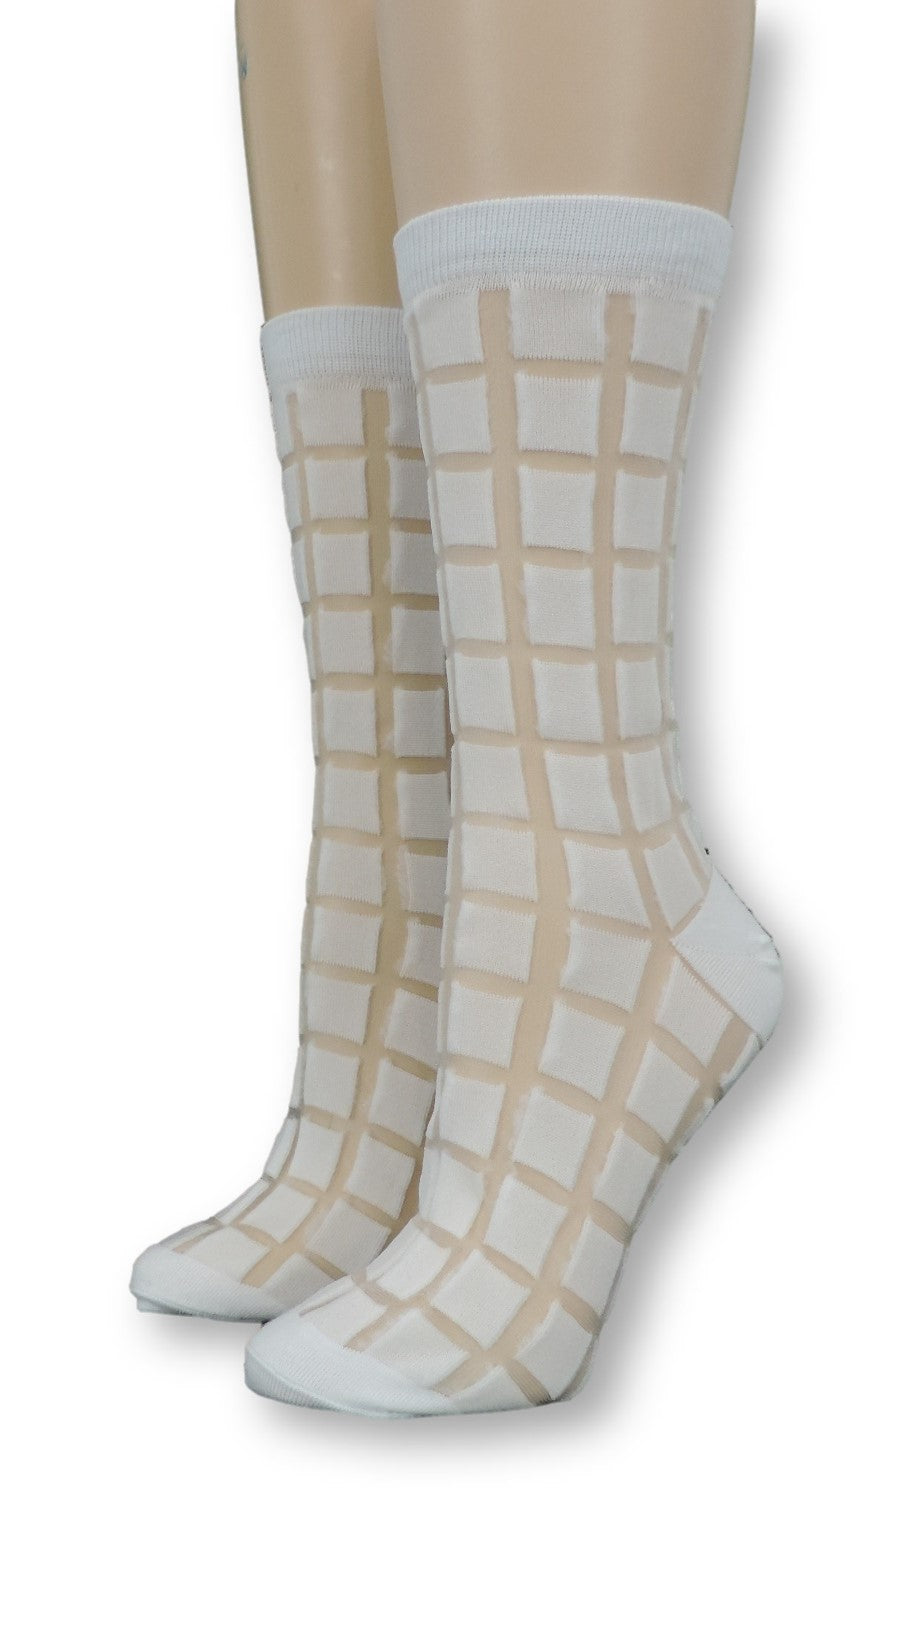 Ash white Square Sheer Socks - Global Trendz Fashion®